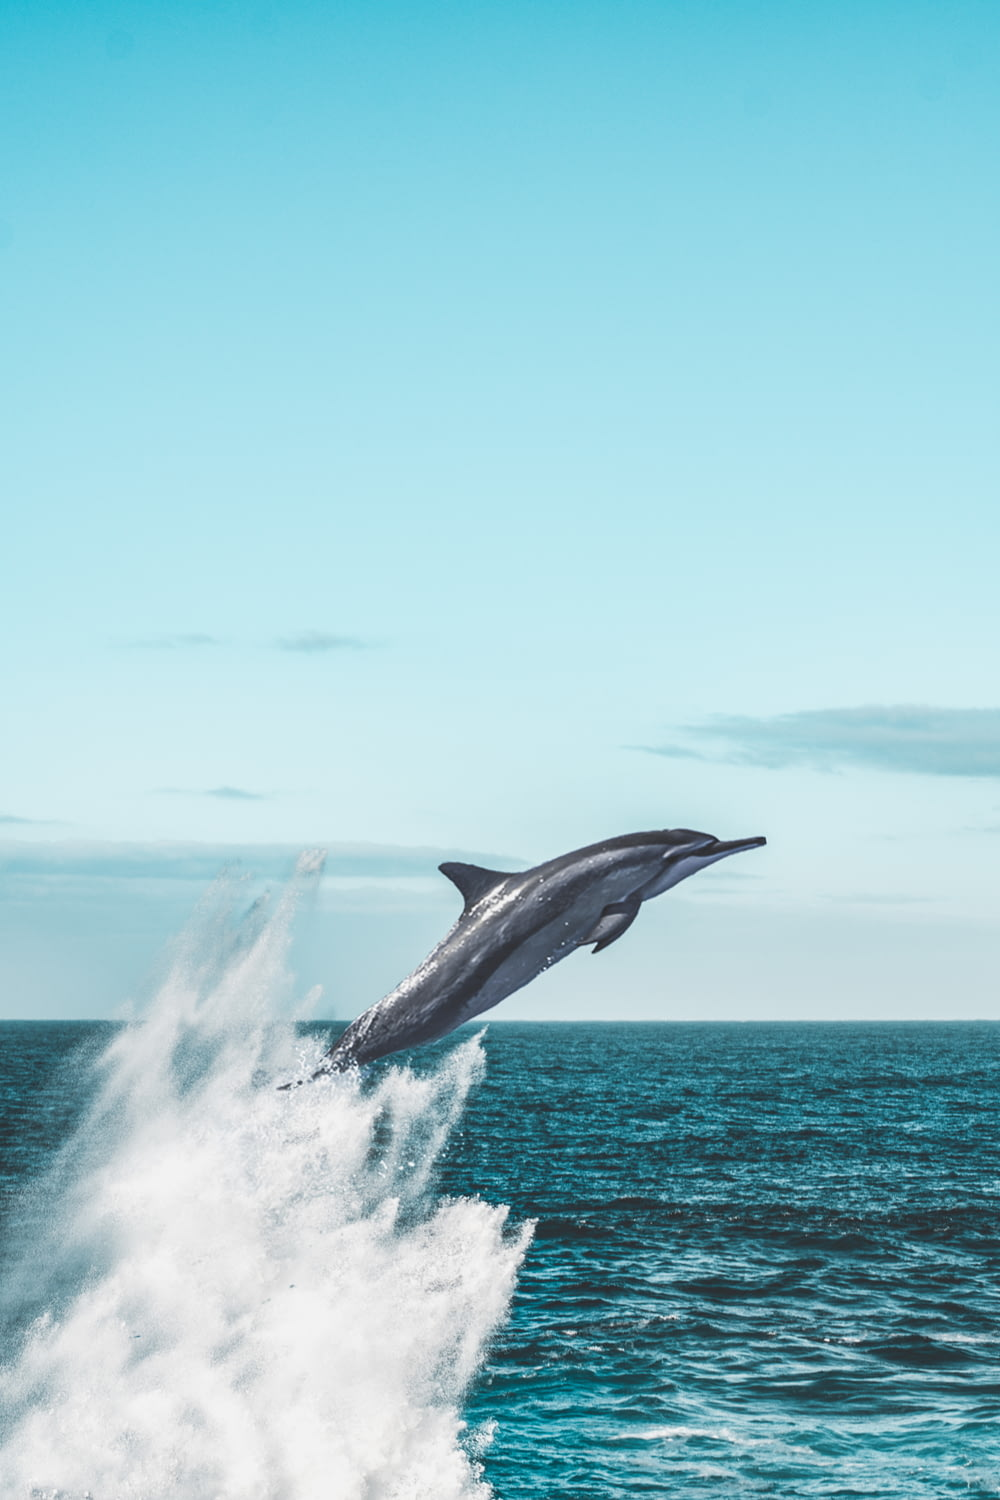 dolphin jumping on sea during daytime